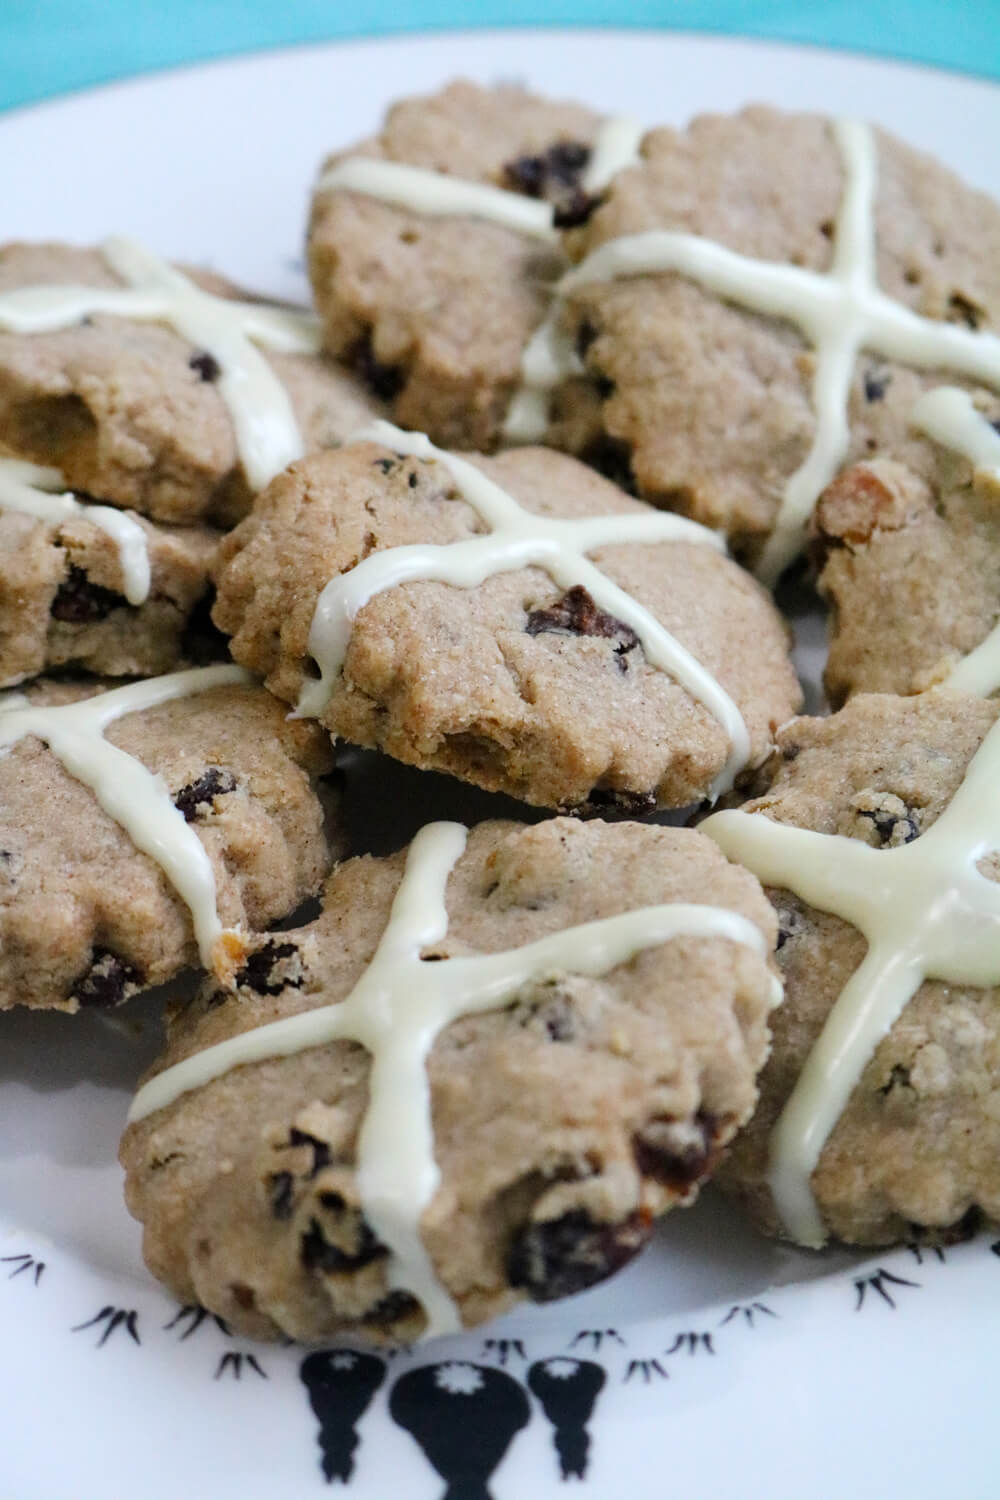 Hot Cross Bun Shortbread Cookies | Hungry Little Bear